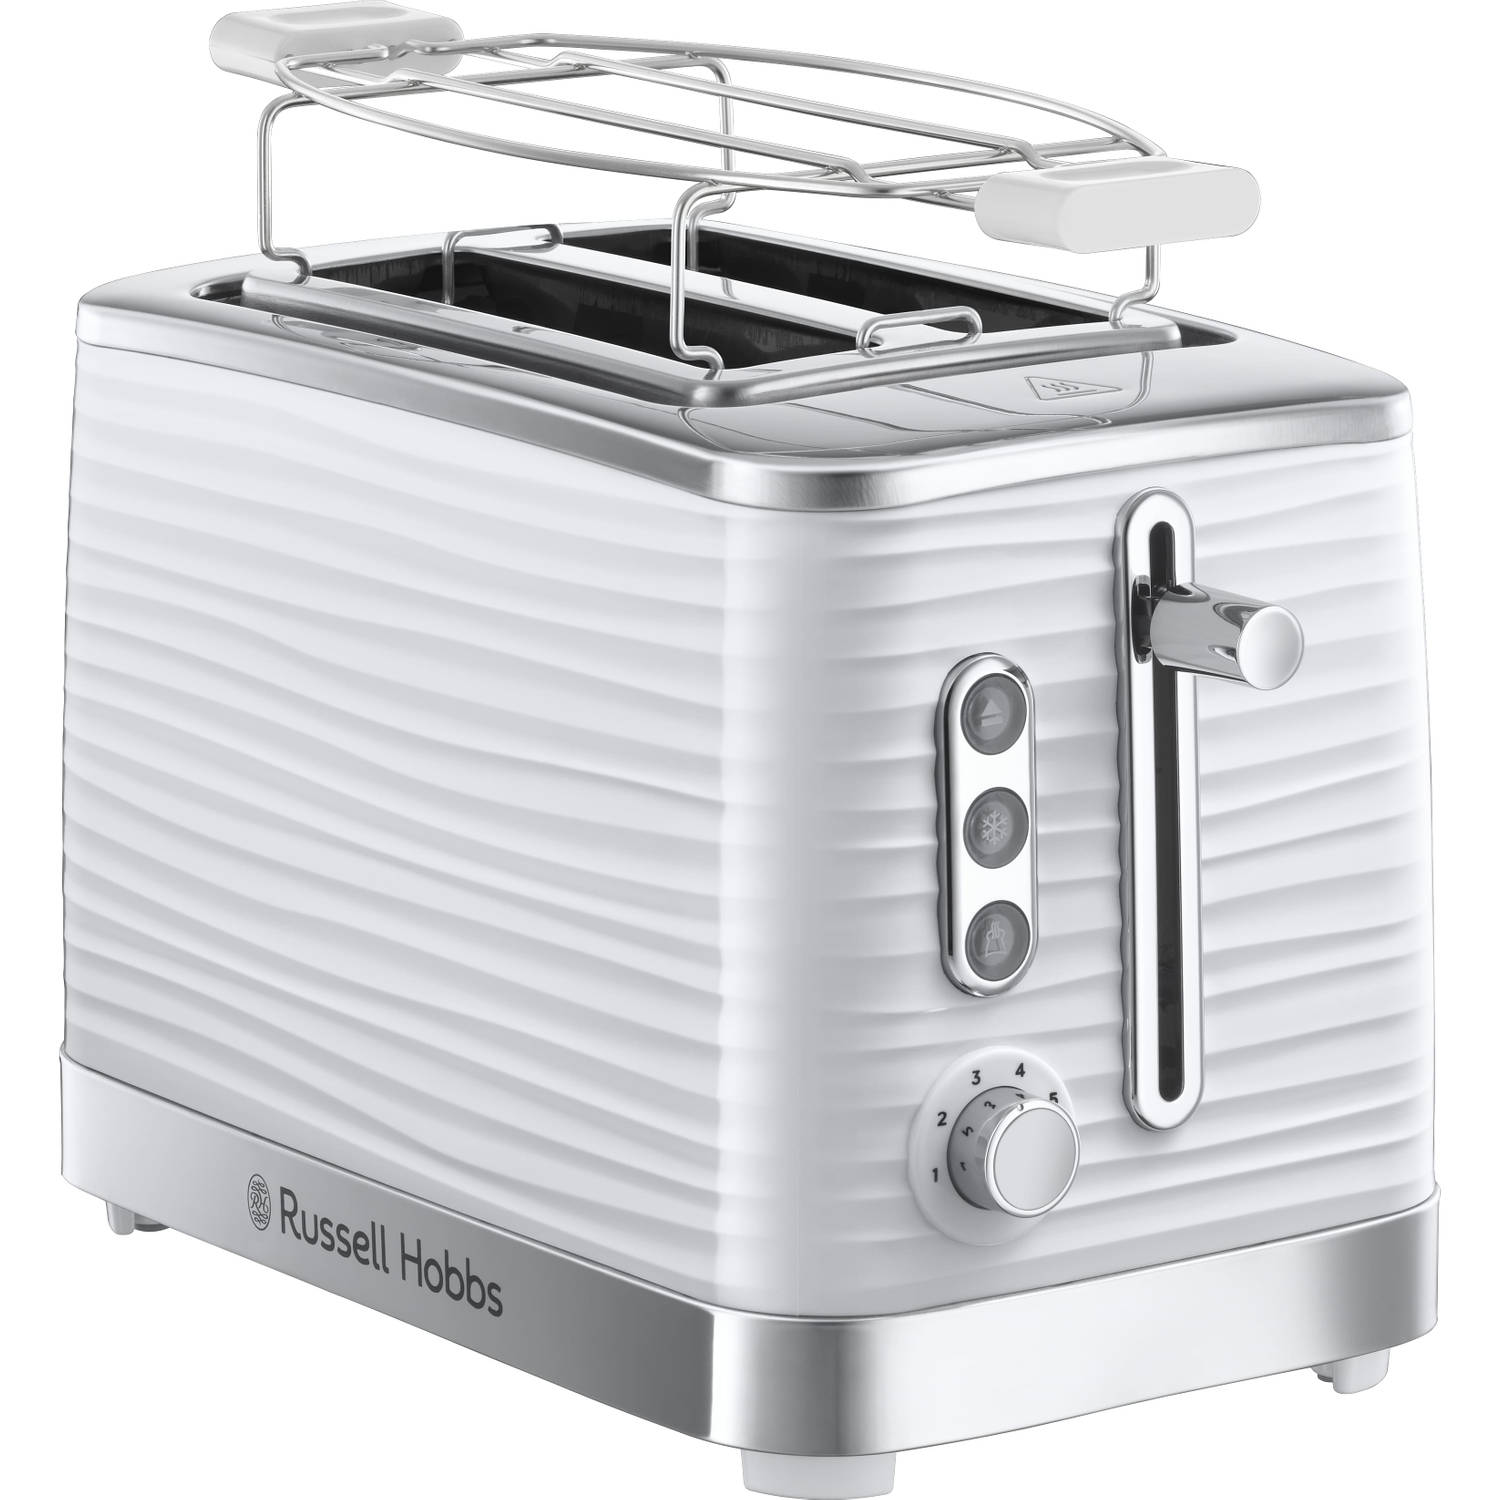 Russell Hobbs broodrooster Inpsire 24370-56 - wit